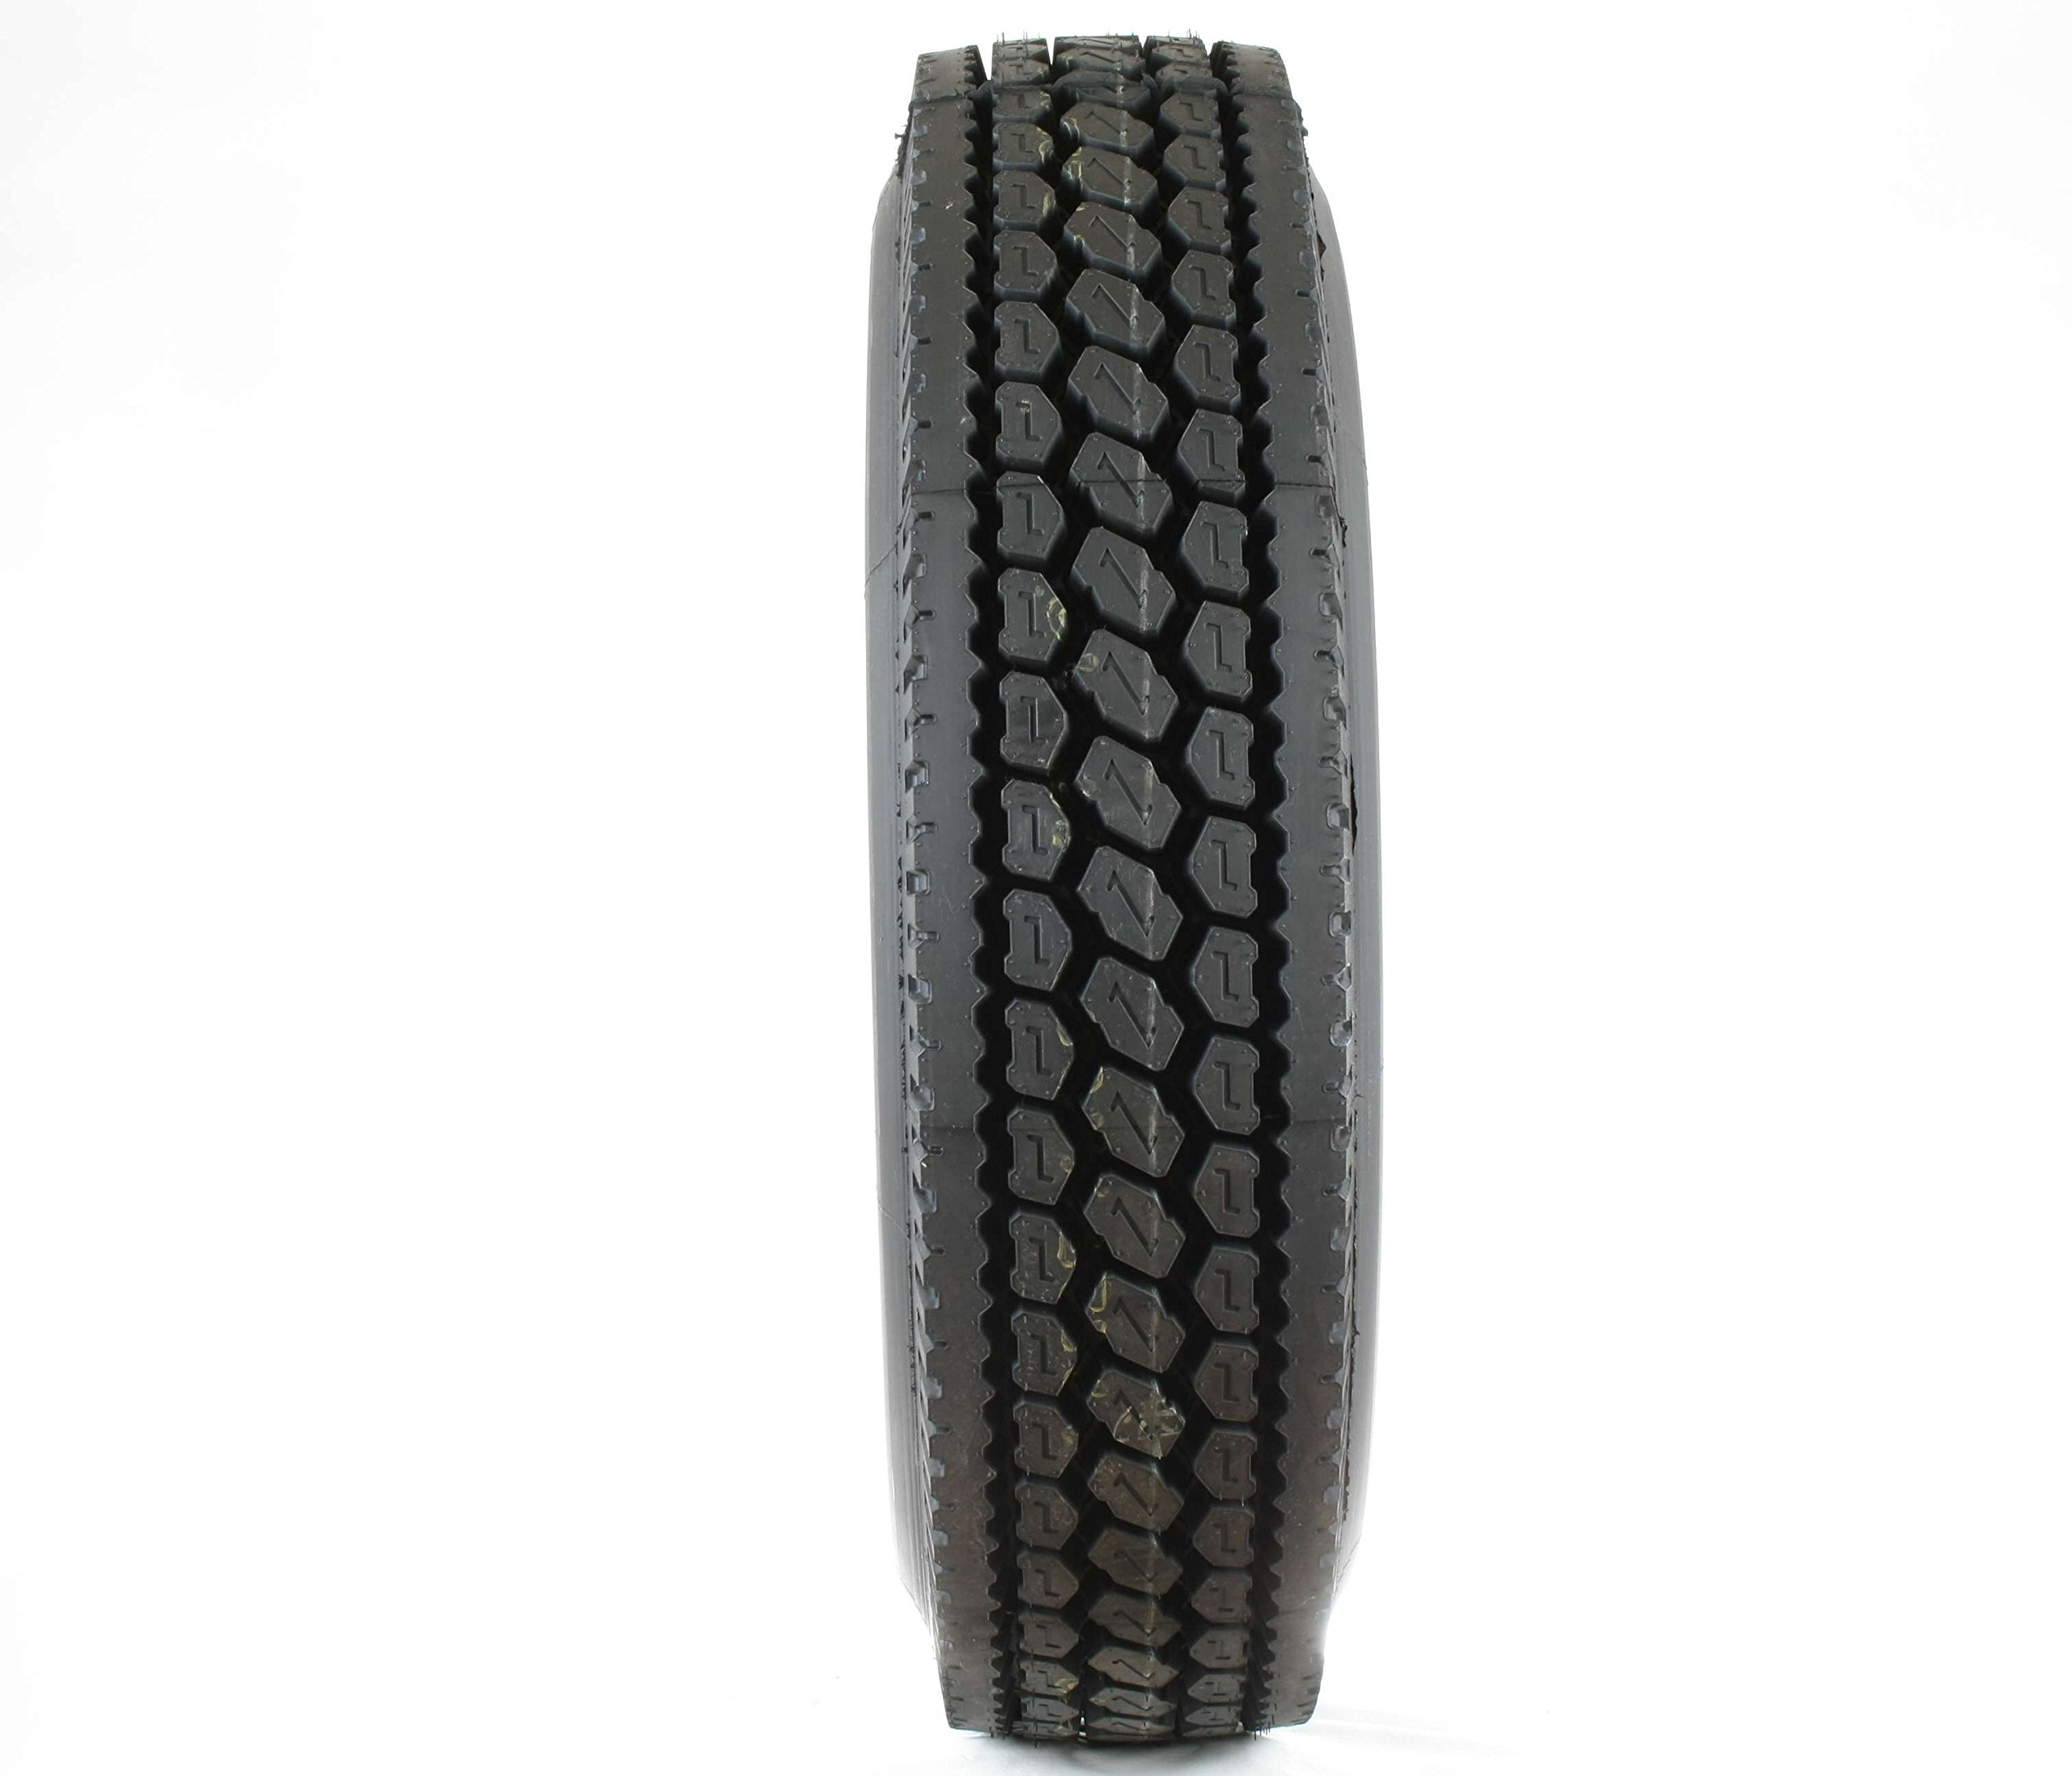 Double Coin RLB400 Closed Shoulder Drive-Position Commercial Radial Truck Tire - 11R22.5 14 ply